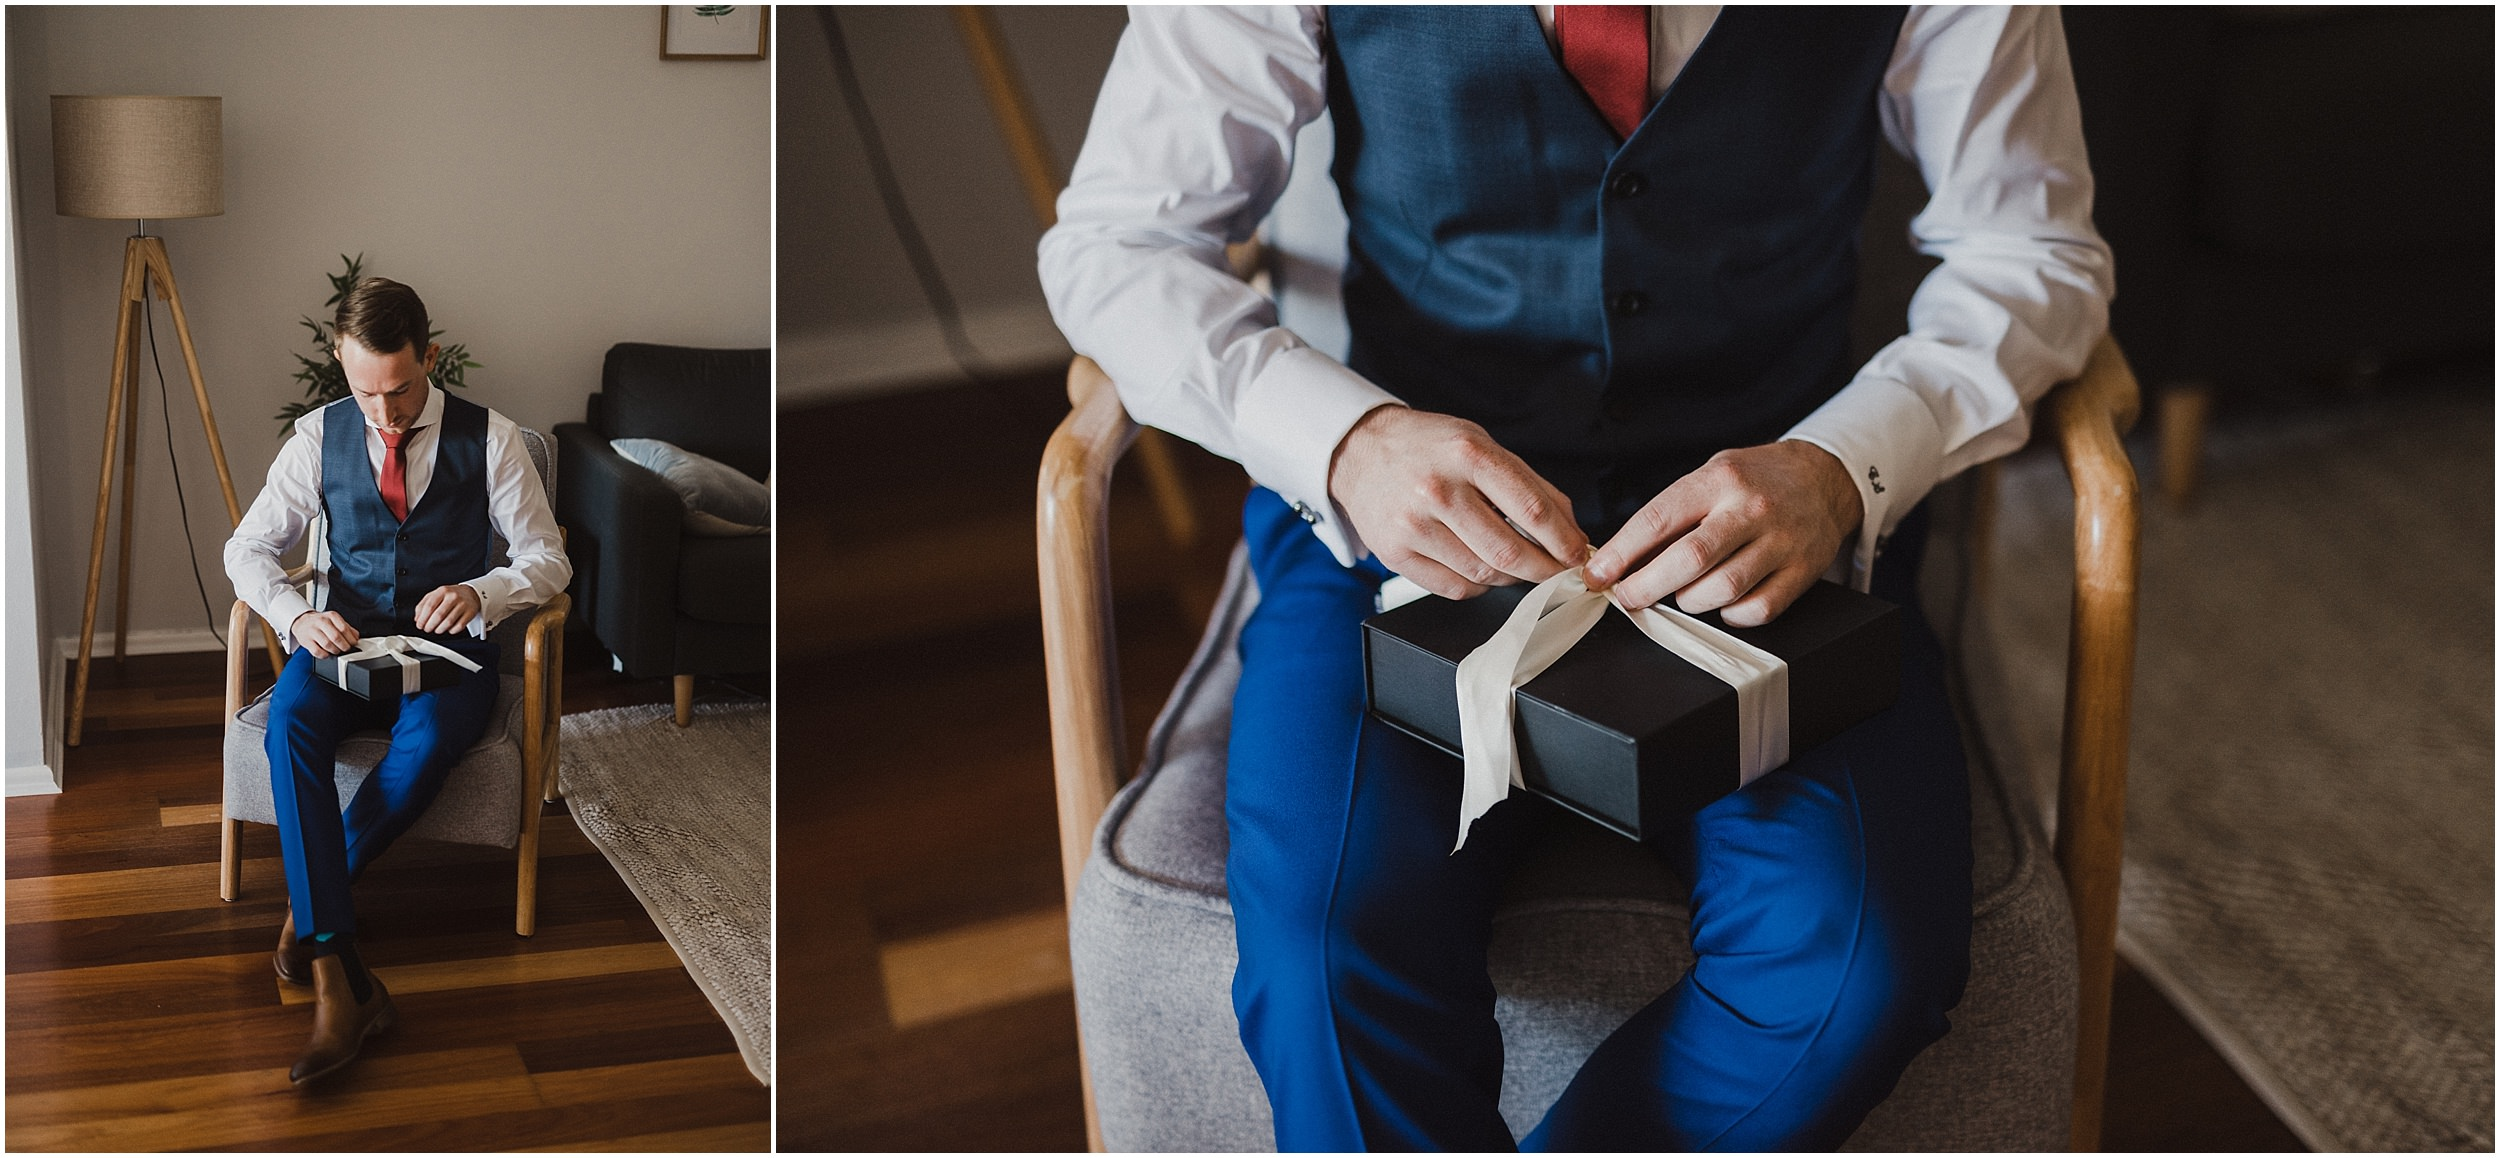 Sydney Wedding - Groom gift